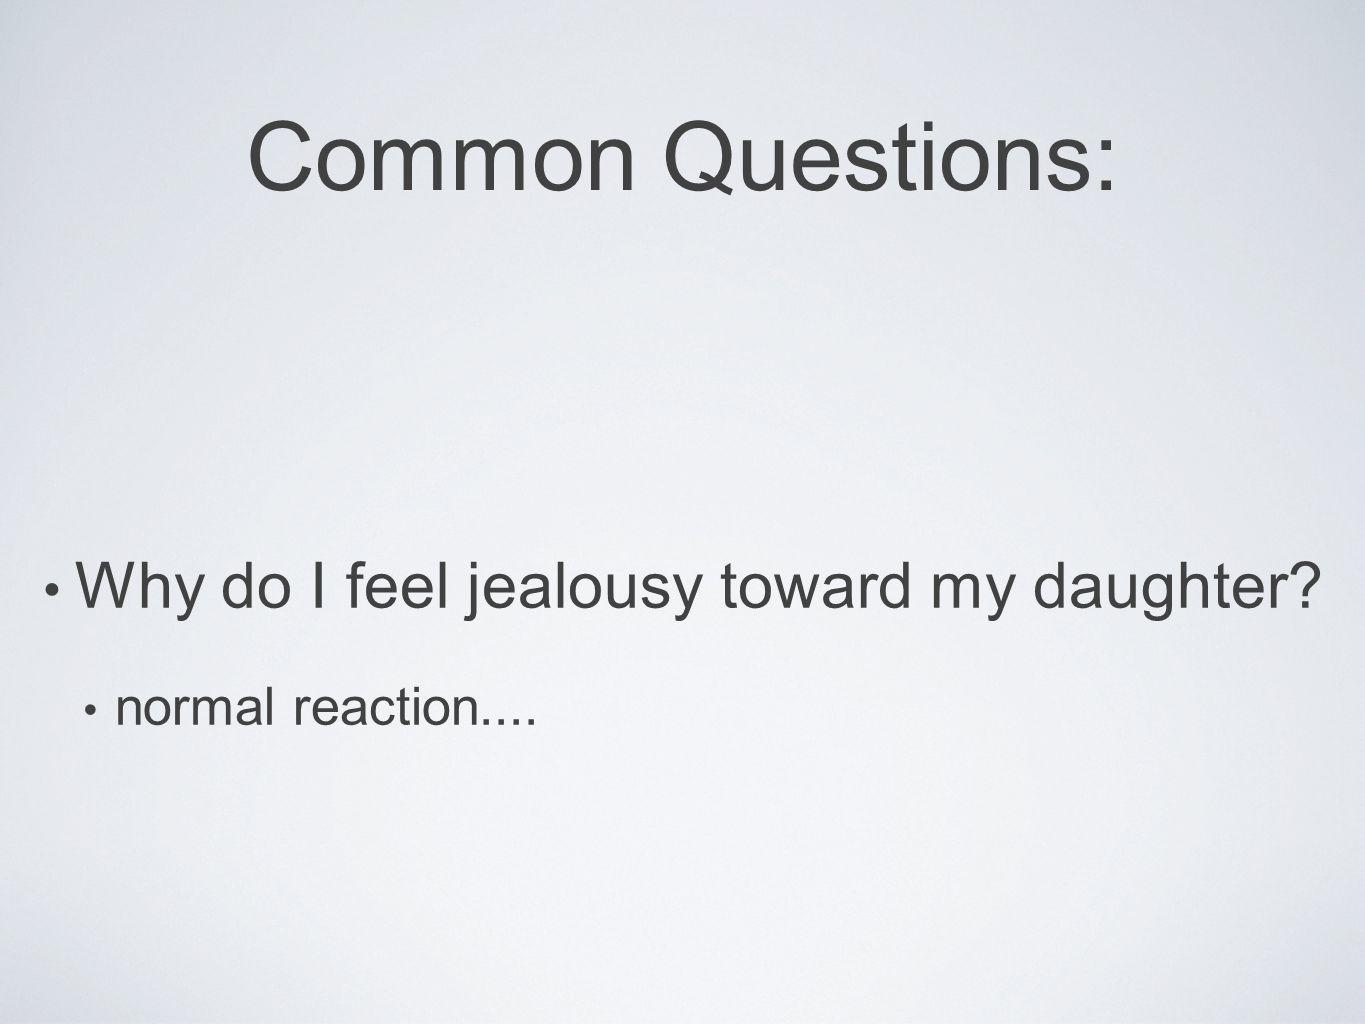 Common Questions: Why do I feel jealousy toward my daughter